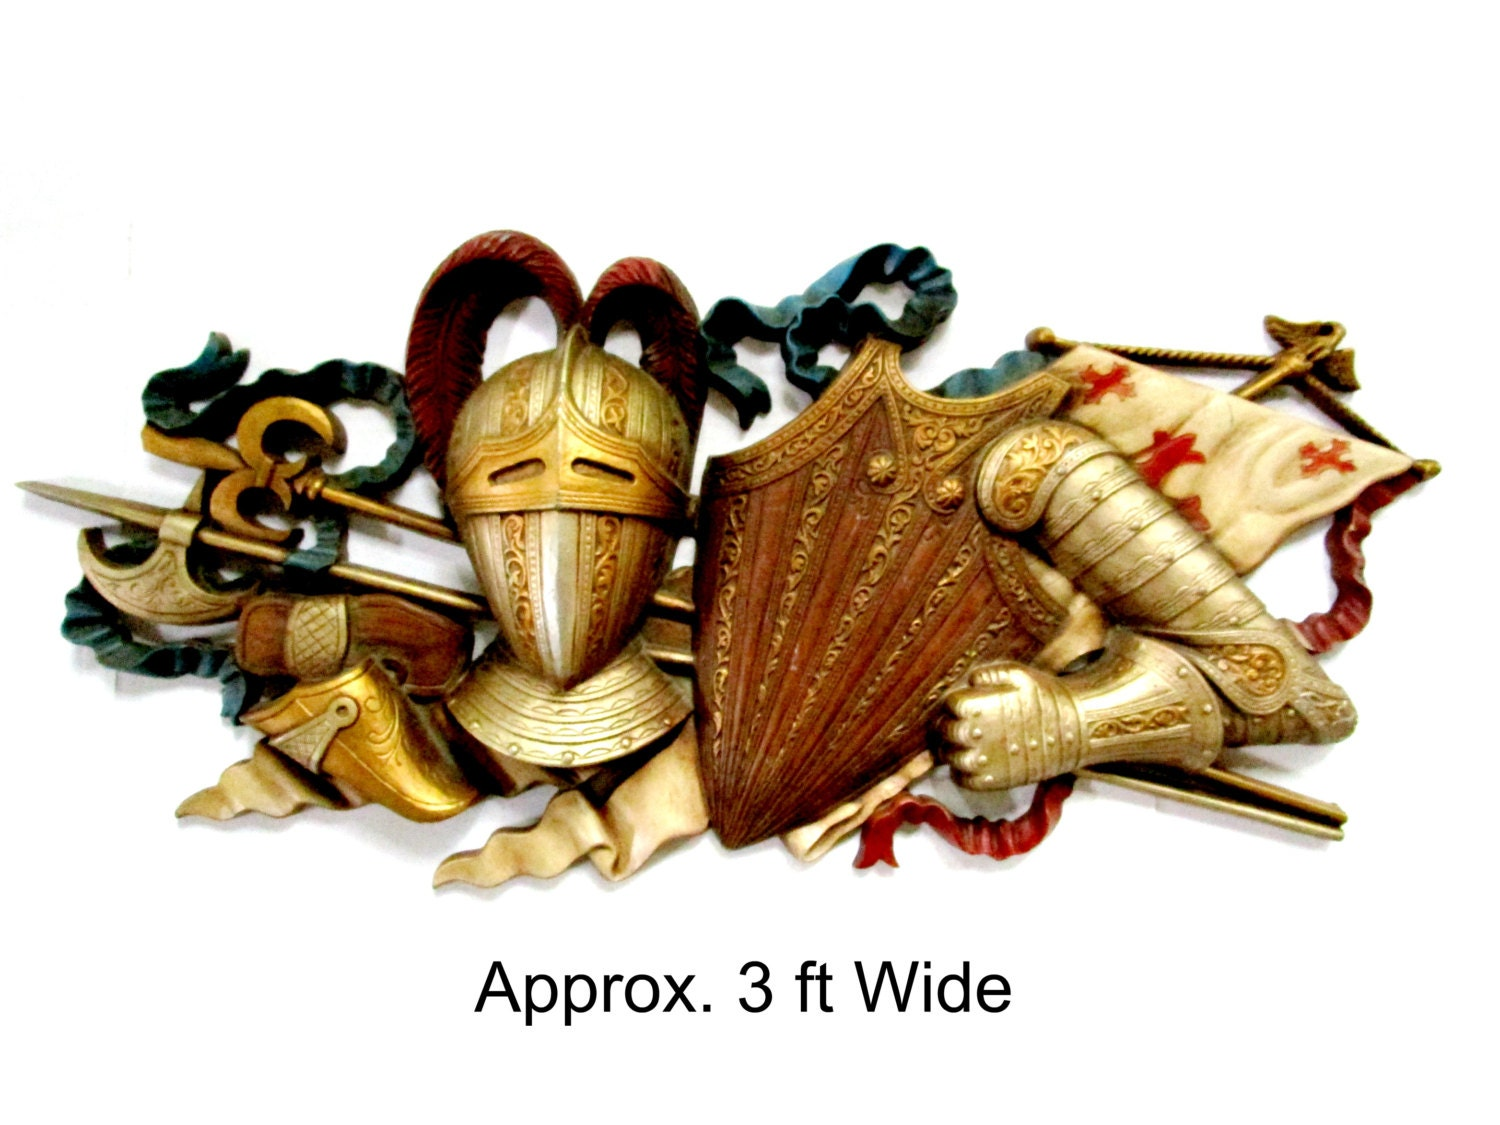 Medieval wall decor knight knights armor knights shield for Armor decoration